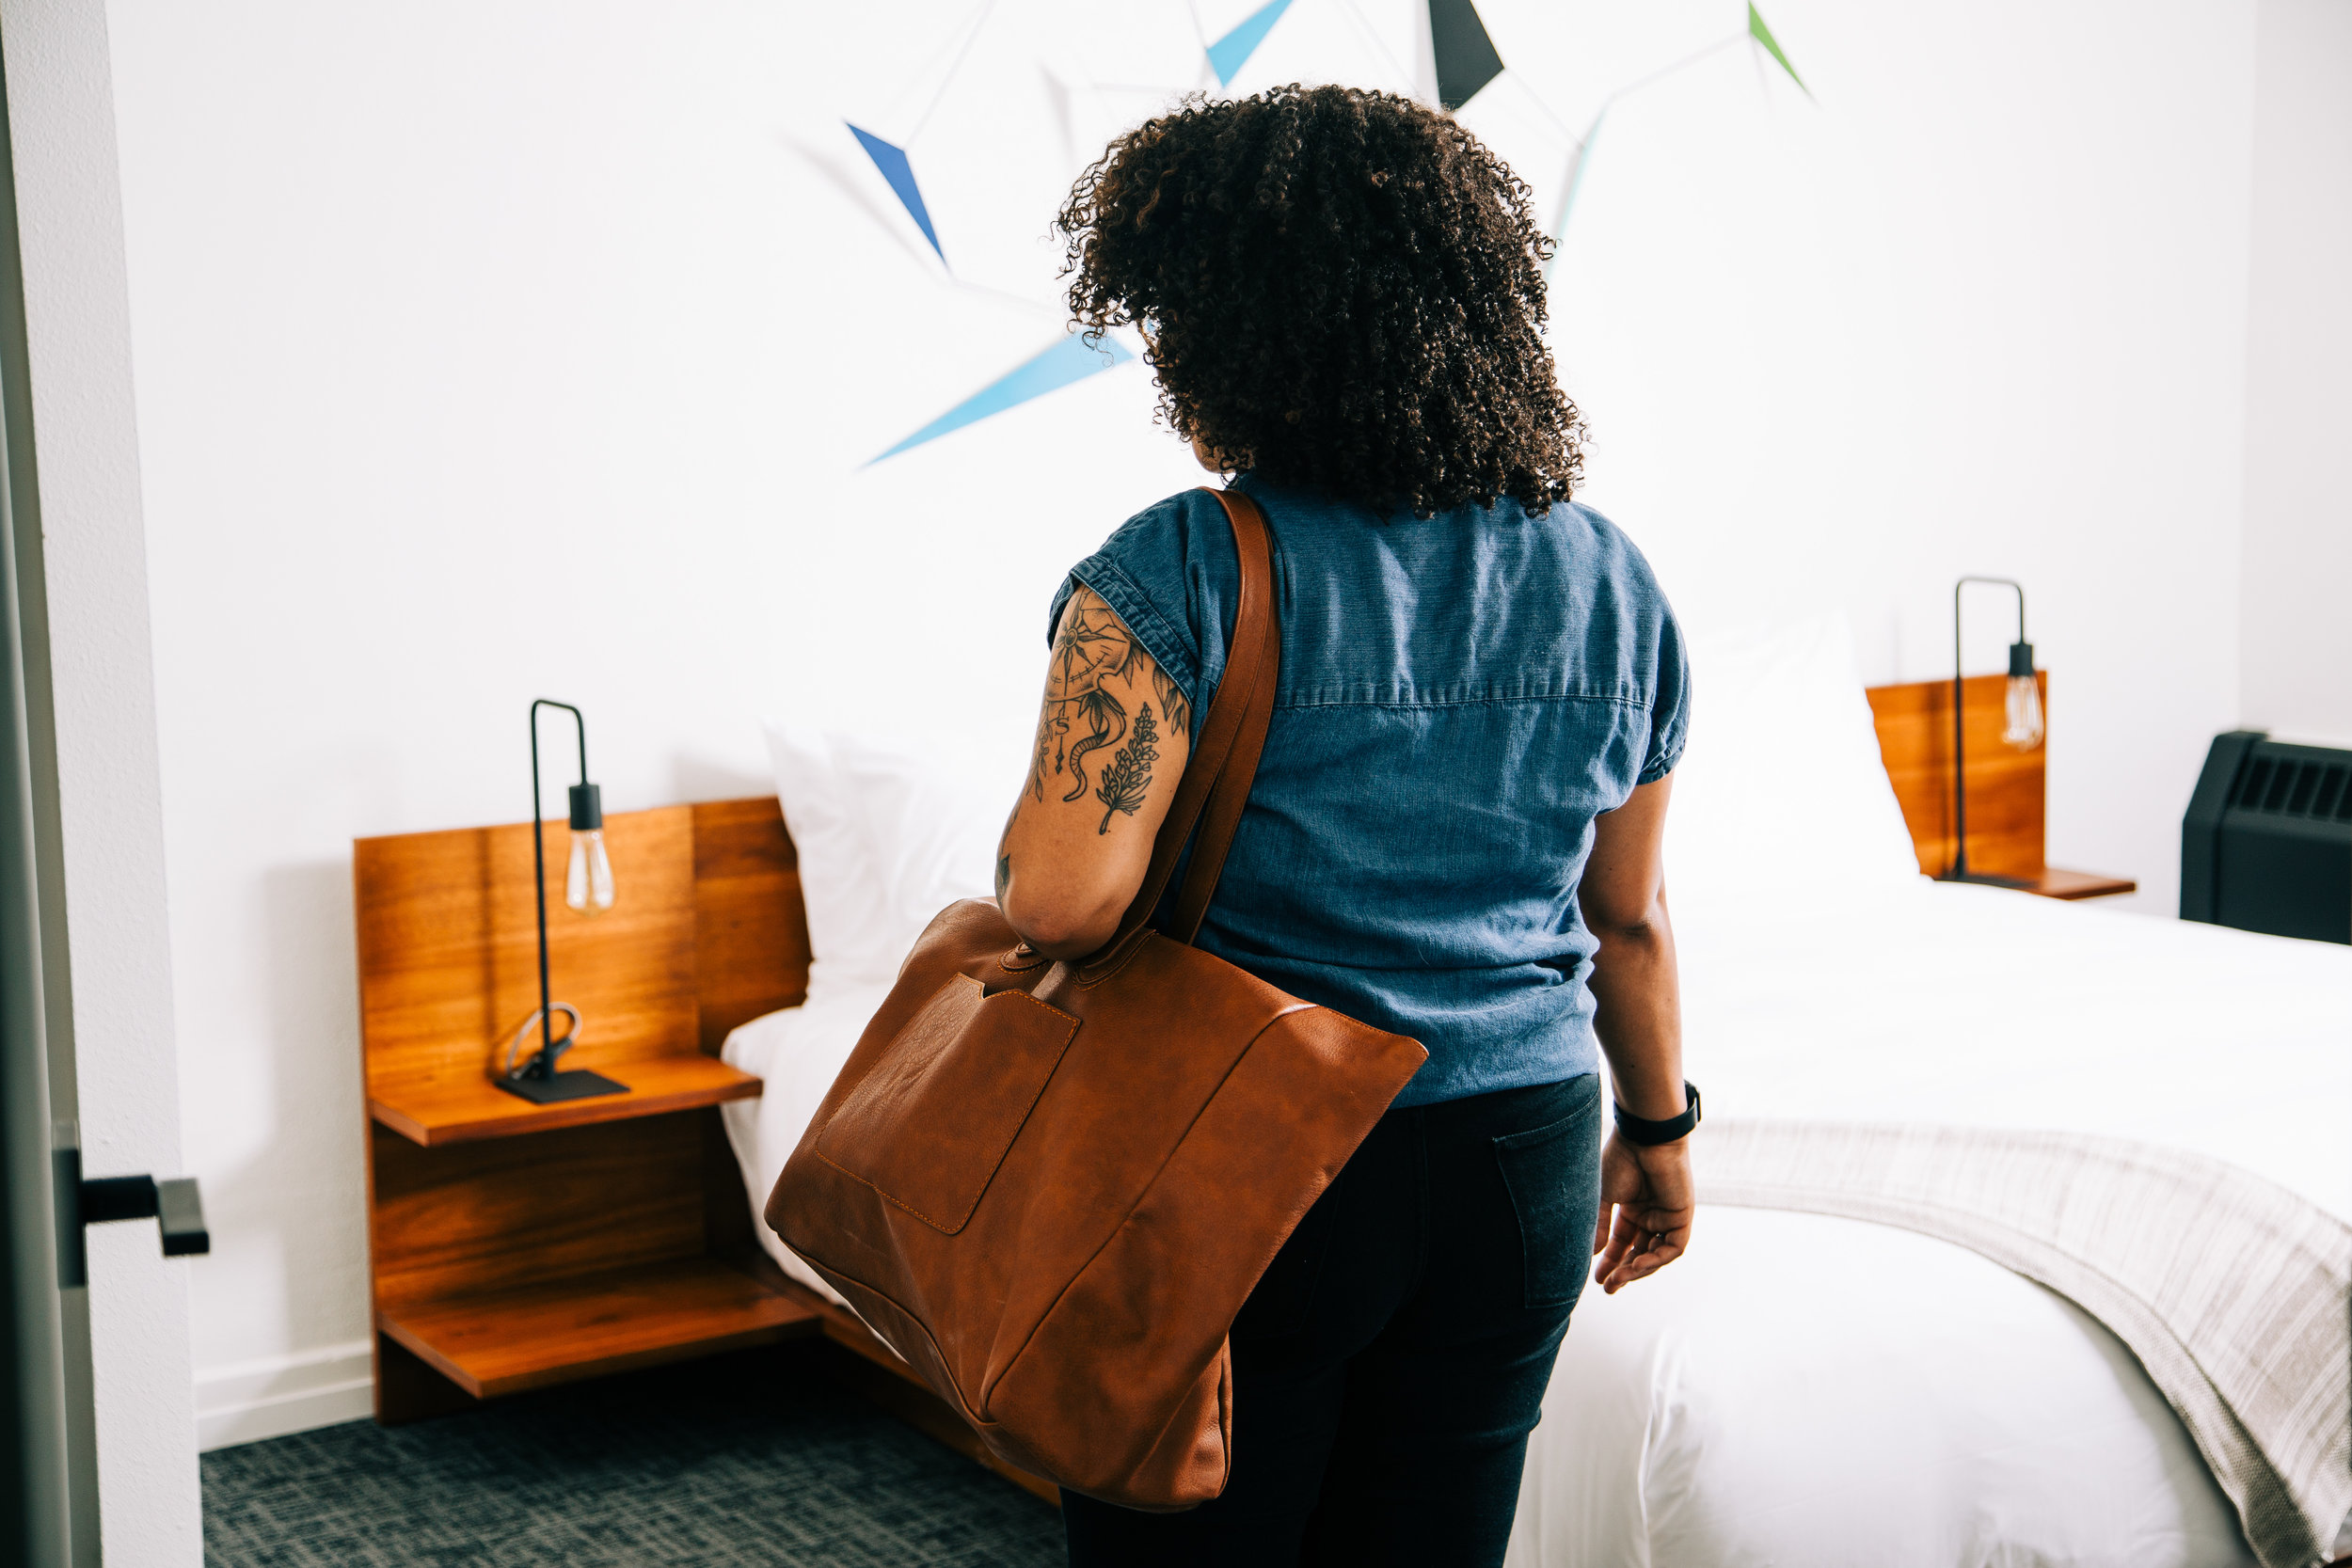 Hotels like The Ace Hotel